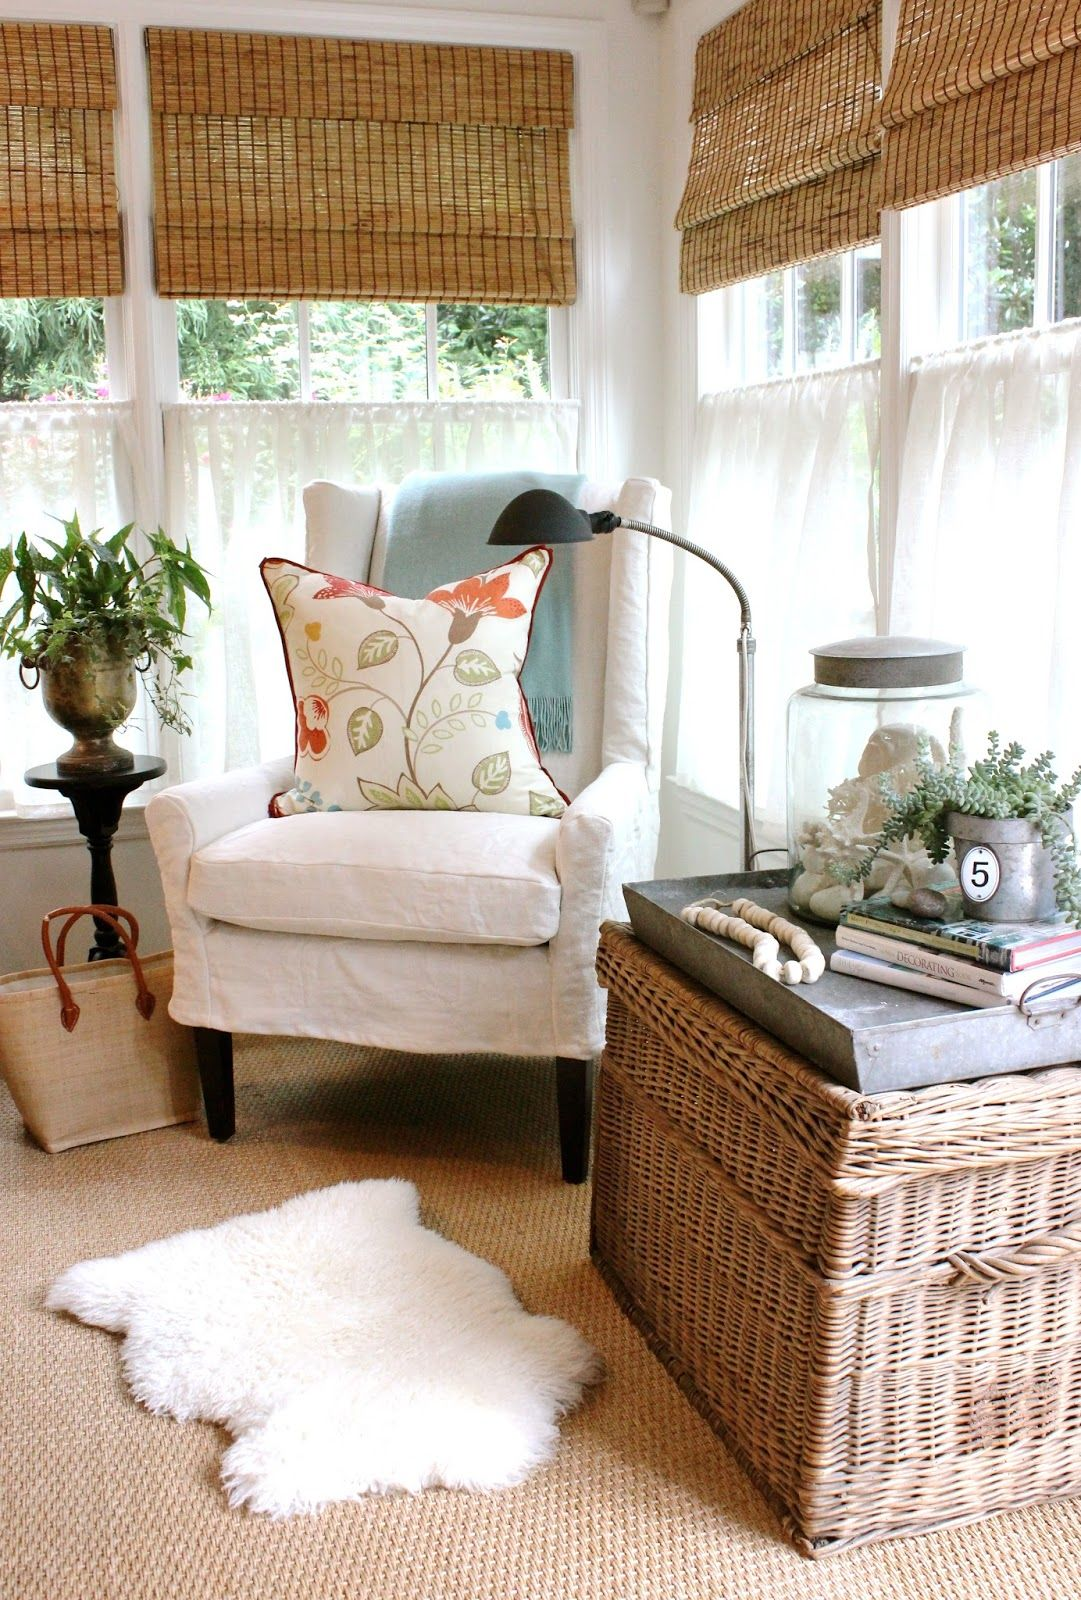 Window treatment ideas for a sunroom  slipcover for wingback chair design indulgence july   home